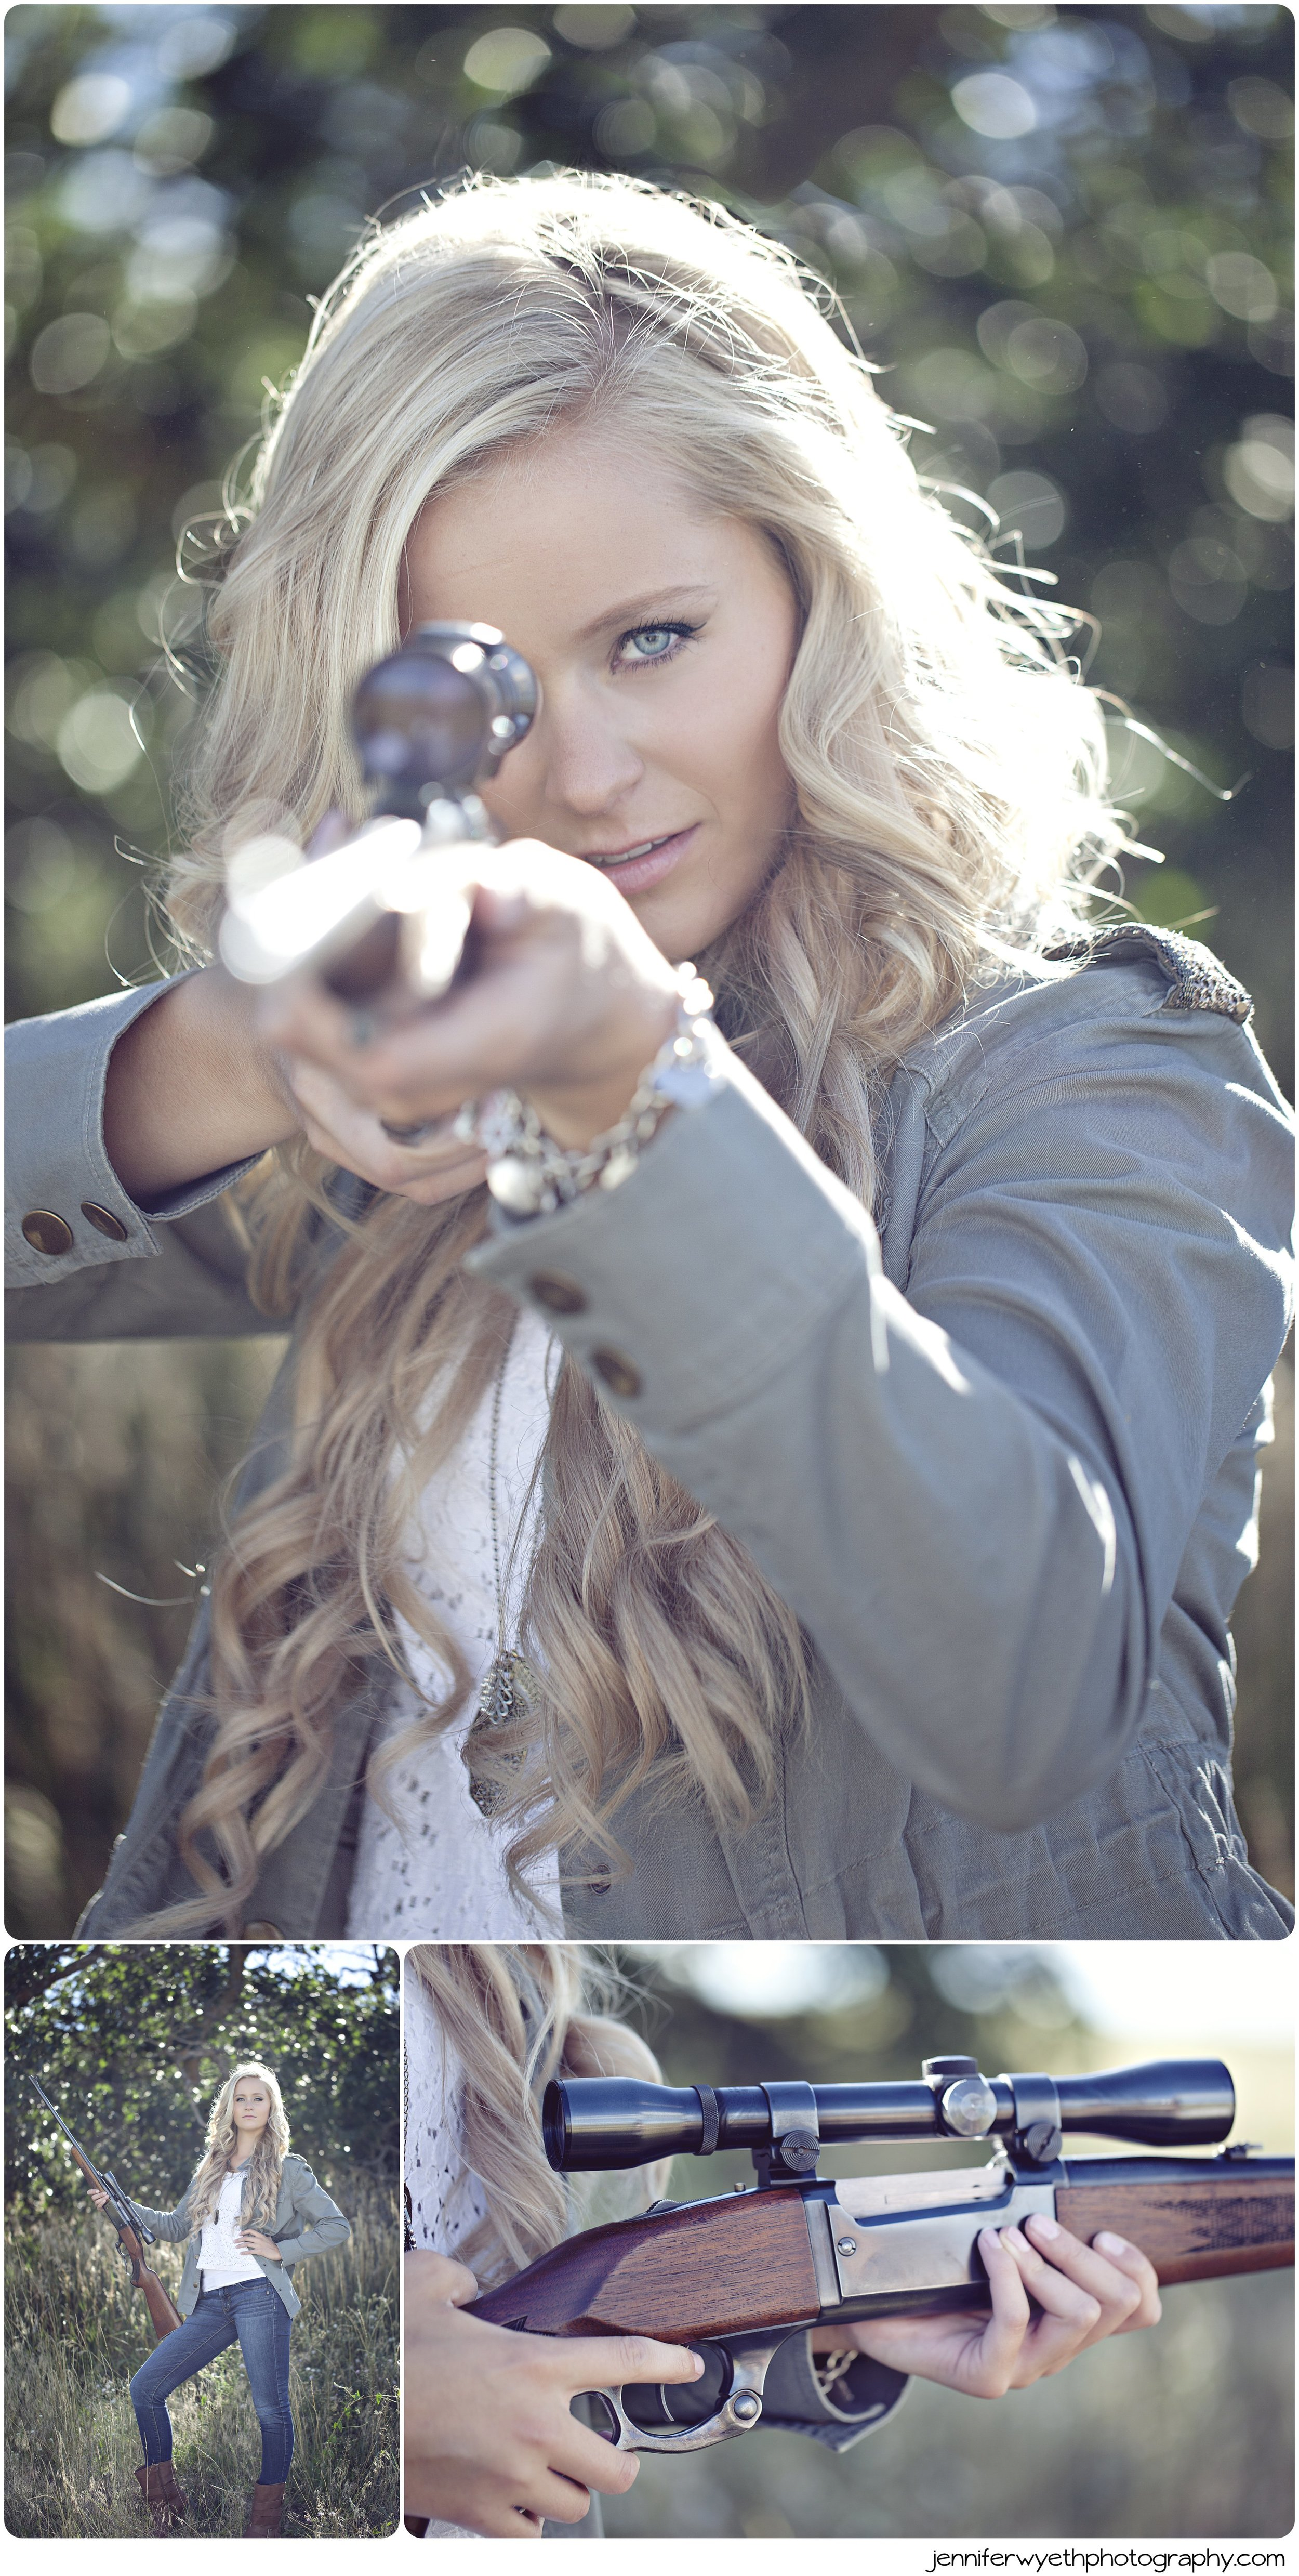 beautiful blond girl posing for picture with a gun